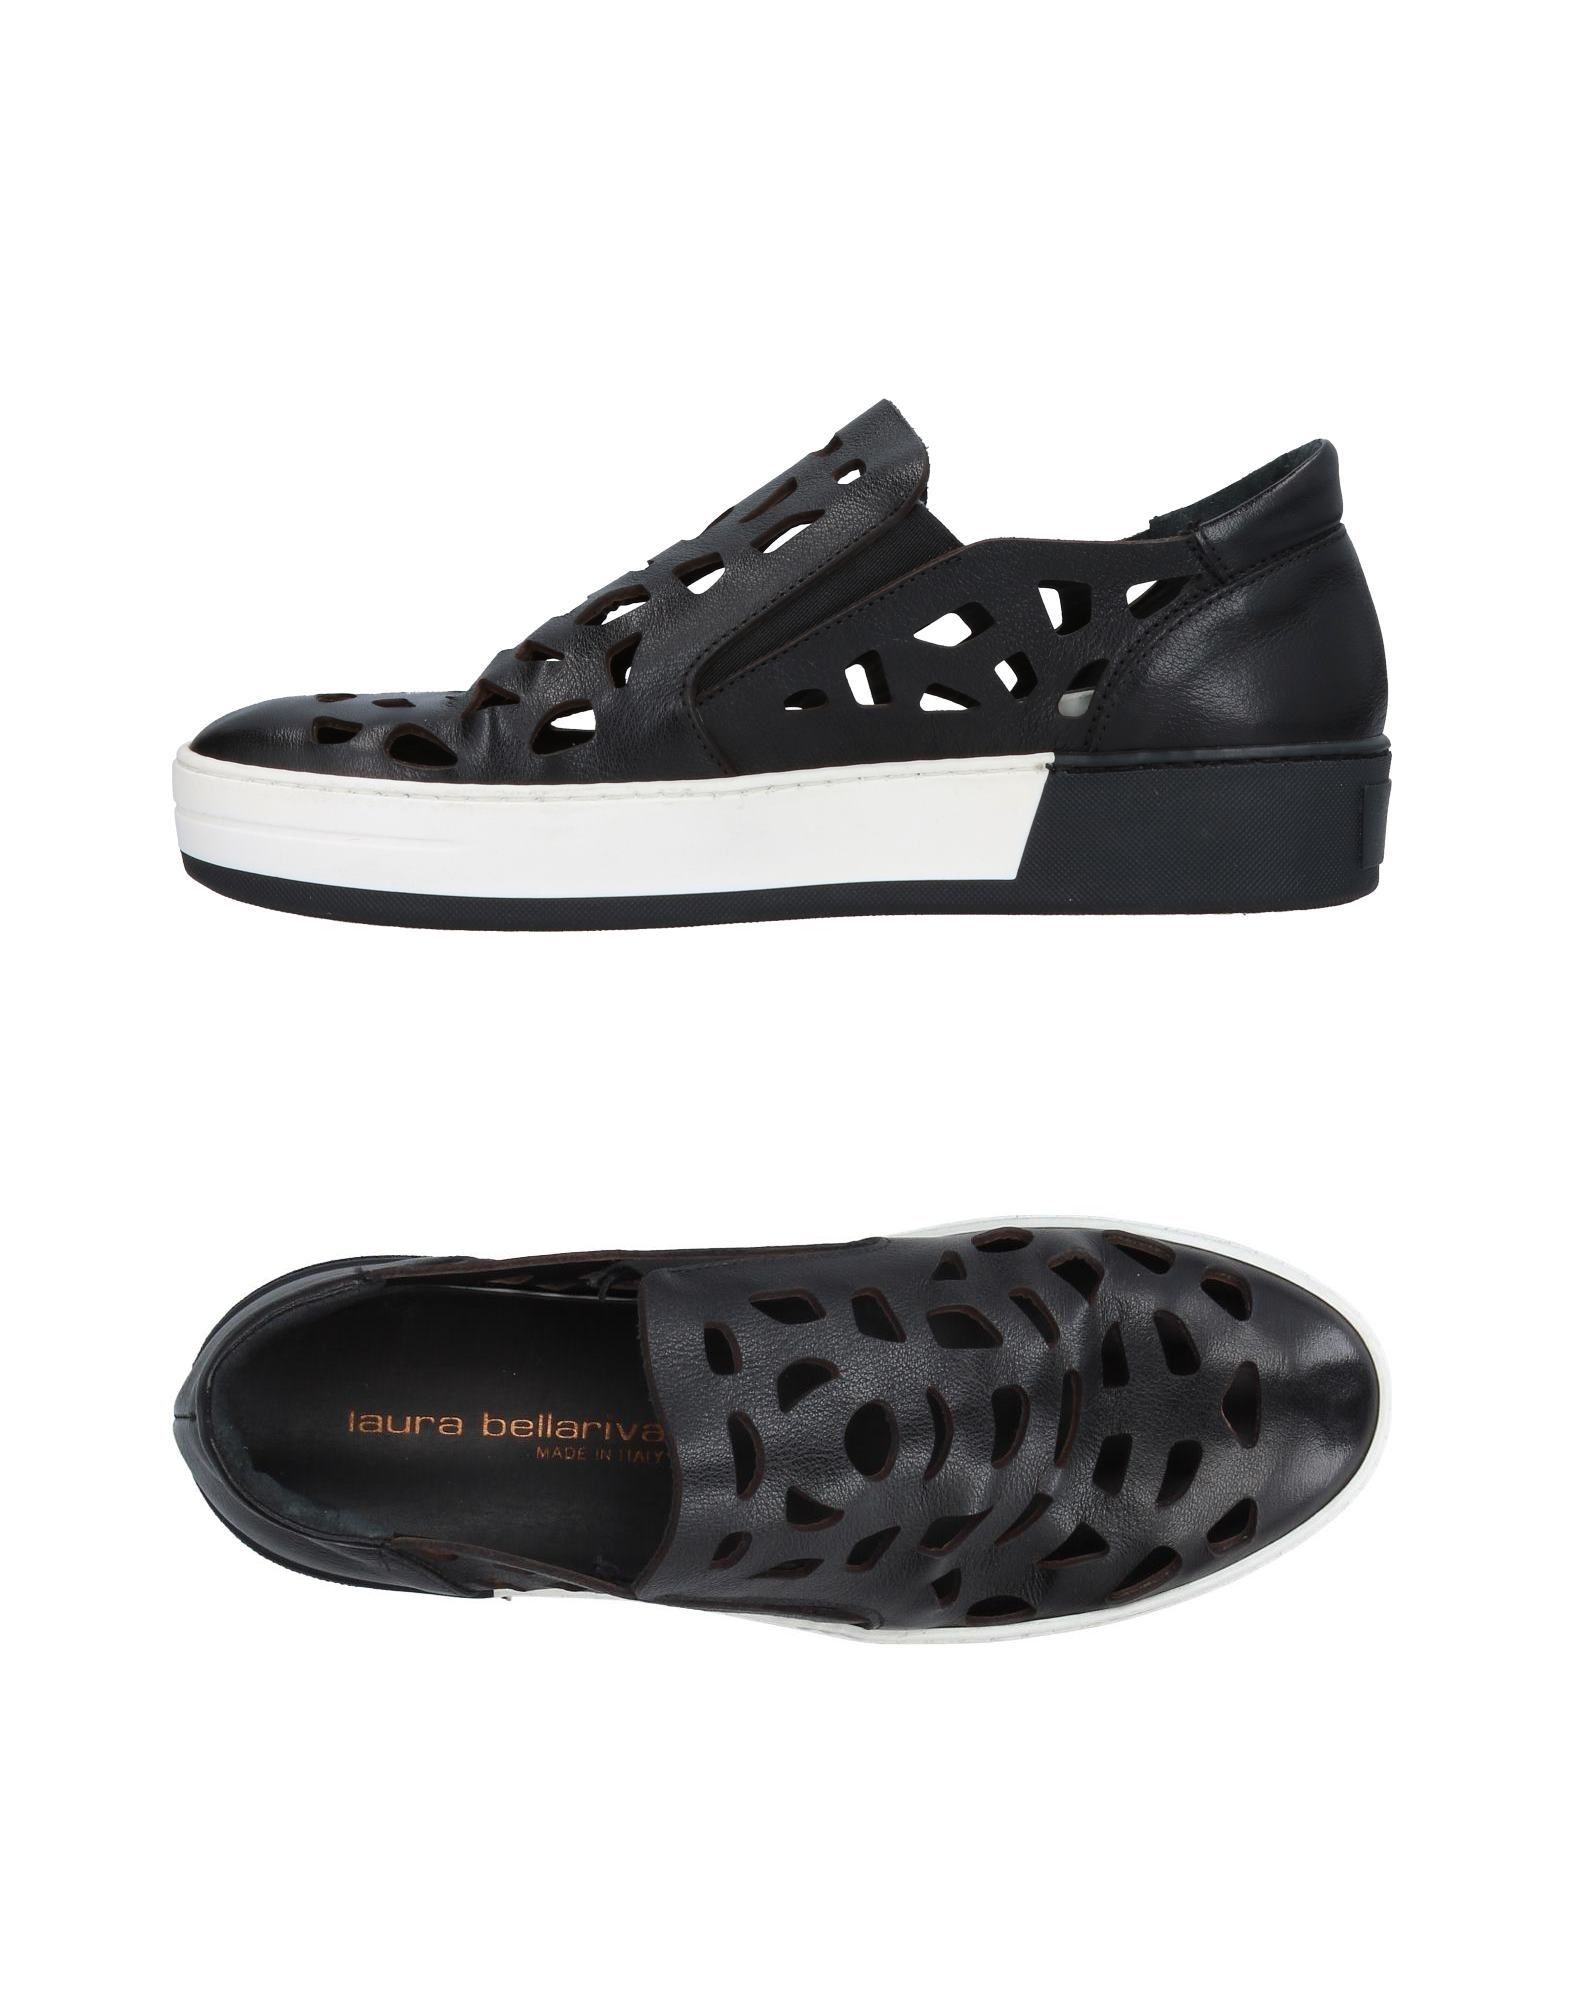 FOOTWEAR - Lace-up shoes on YOOX.COM Laura Bellariva A23AidwB